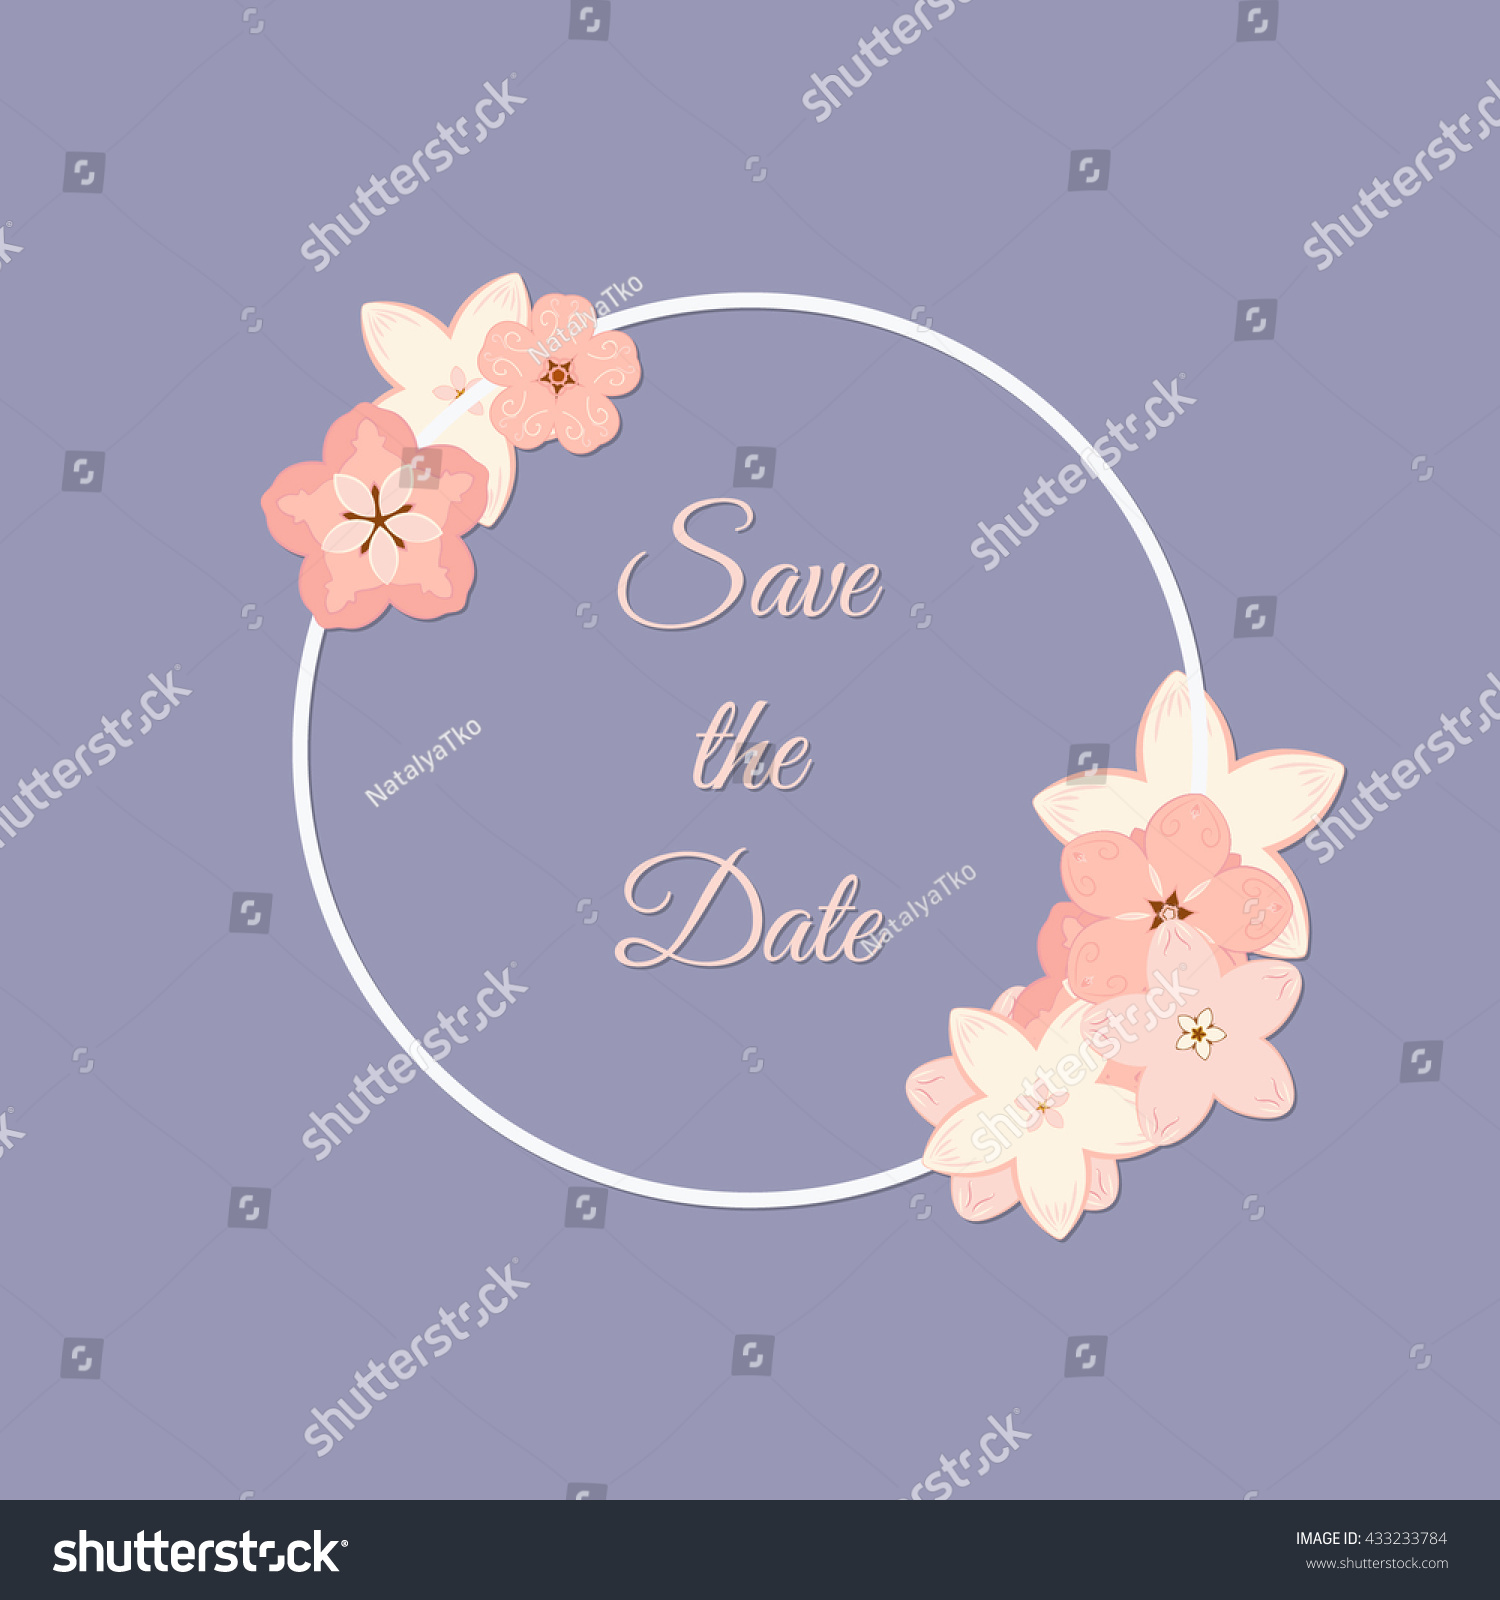 Round frame with decorative branch vector illustration stock - Vector Abstract Illustration Of Decorative Sakura Round Frame Save The Date For Wedding